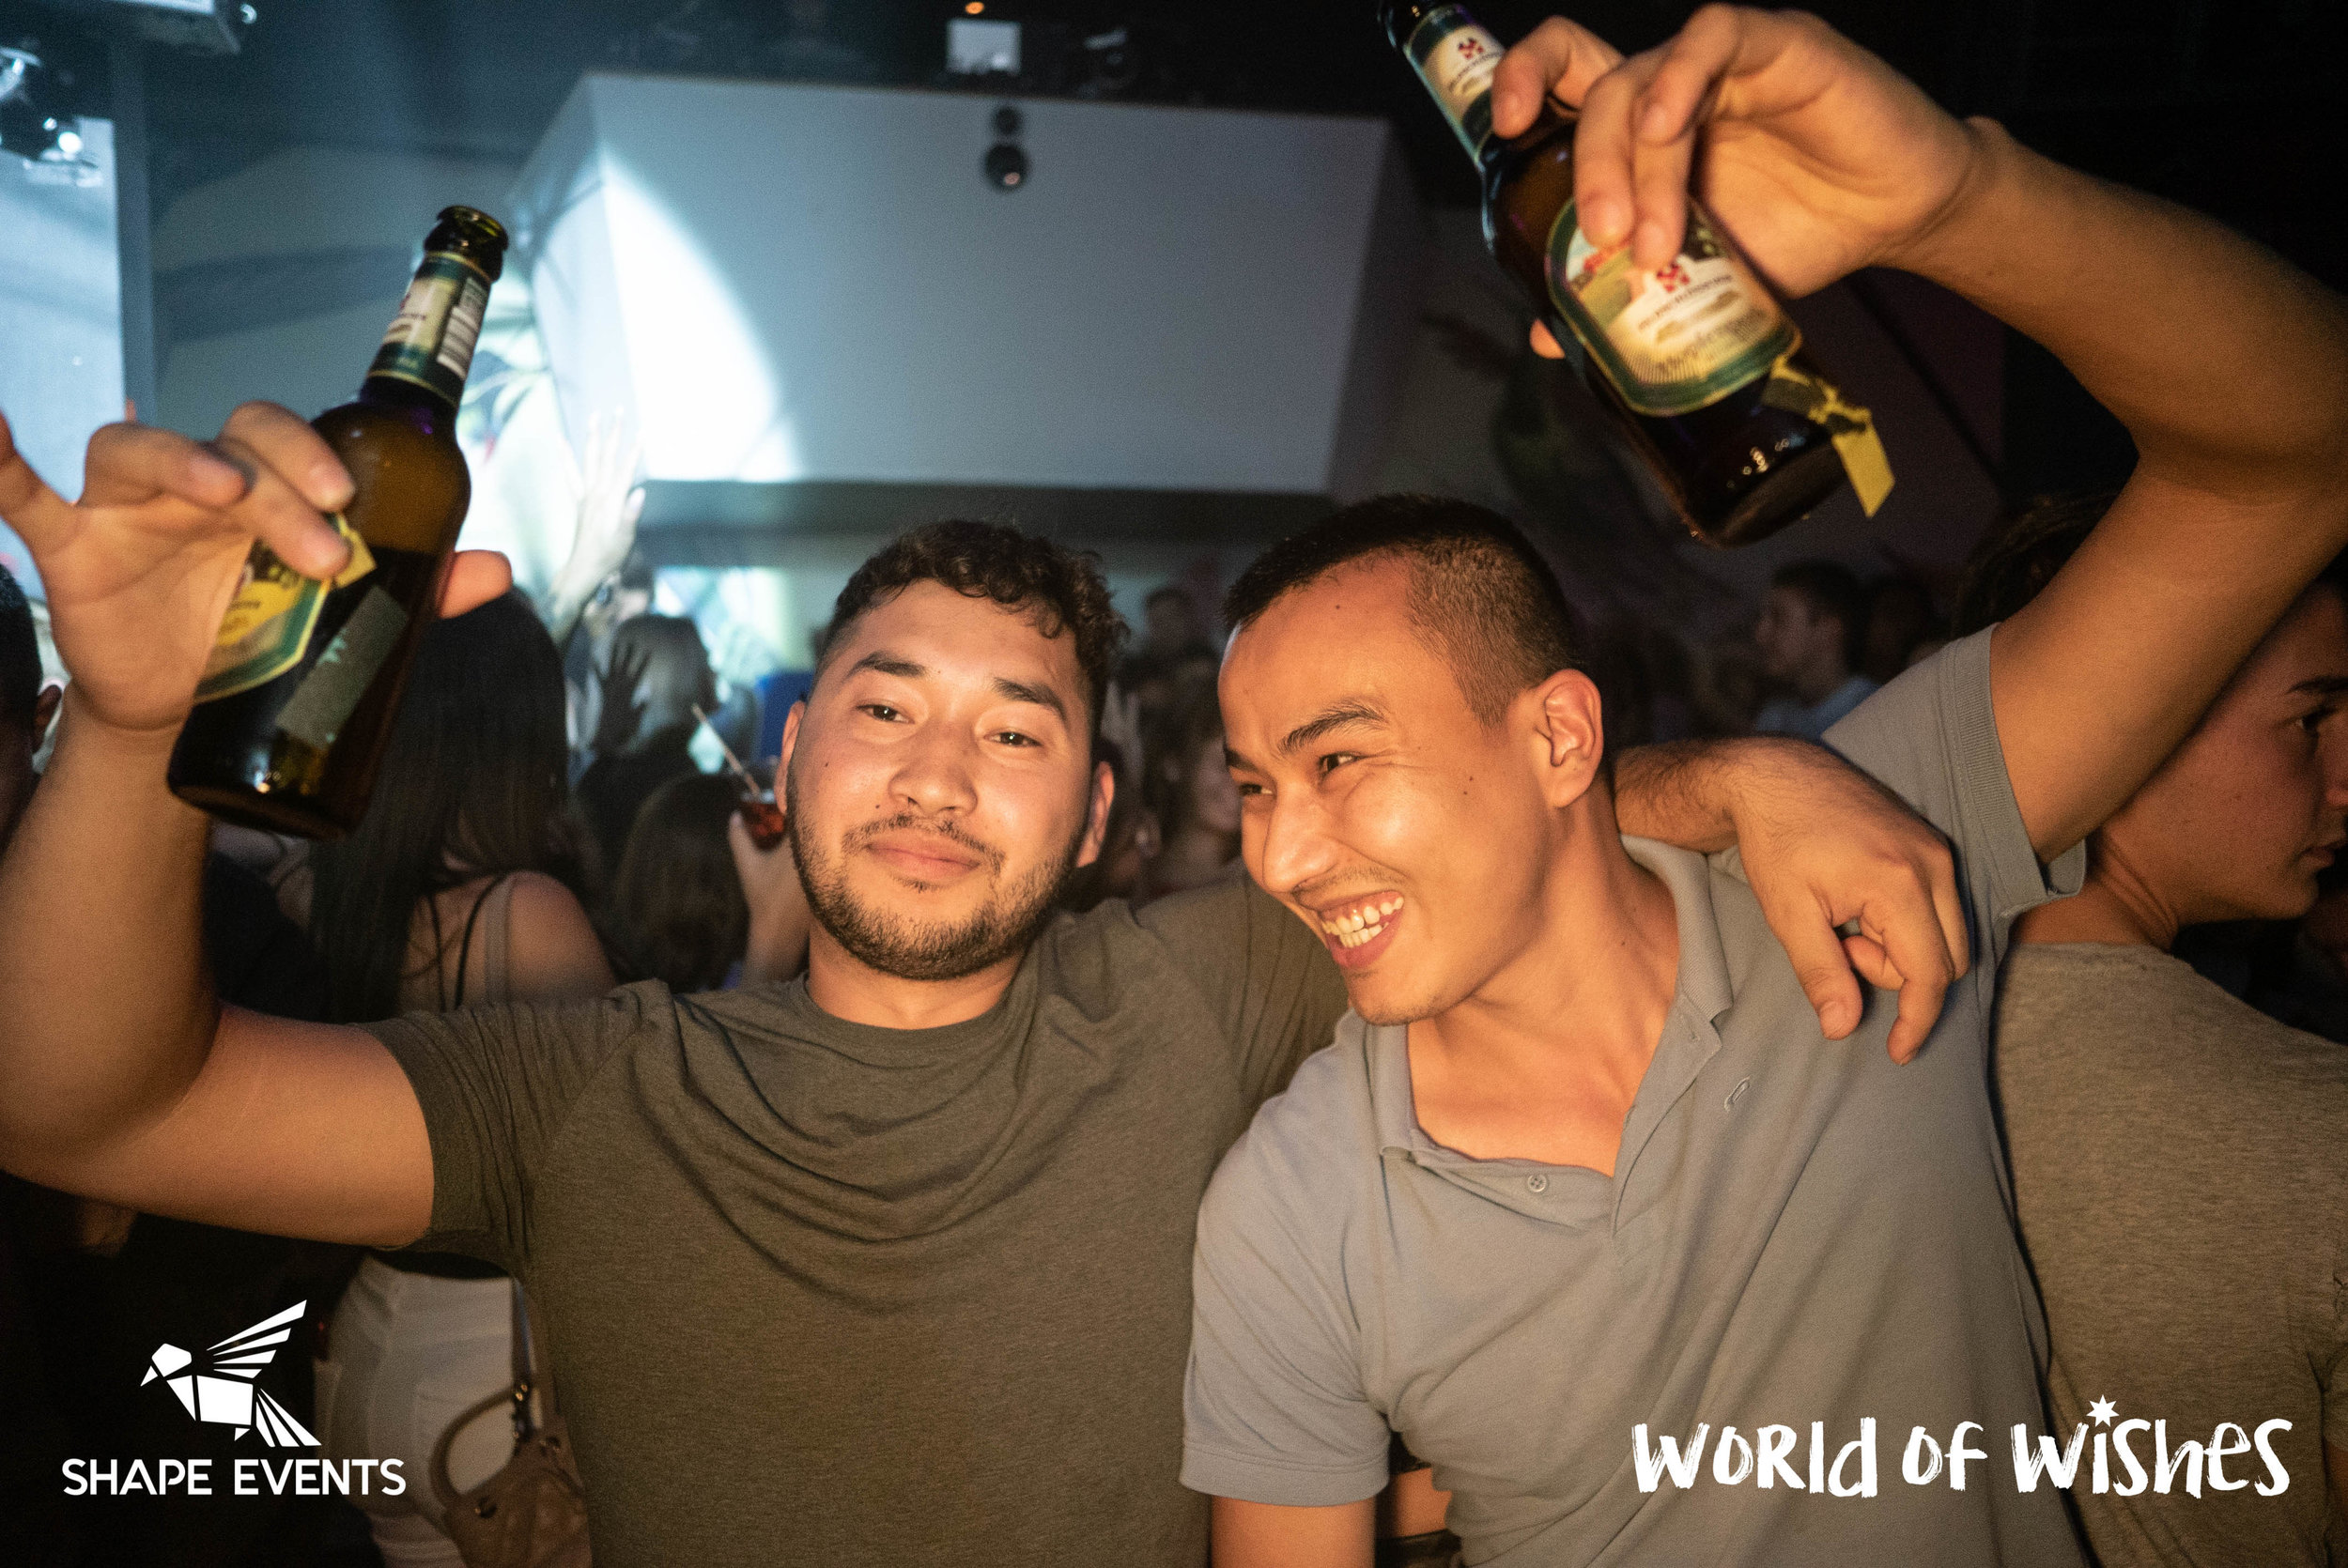 WordOfWishes_Party_Guest-02144.jpg